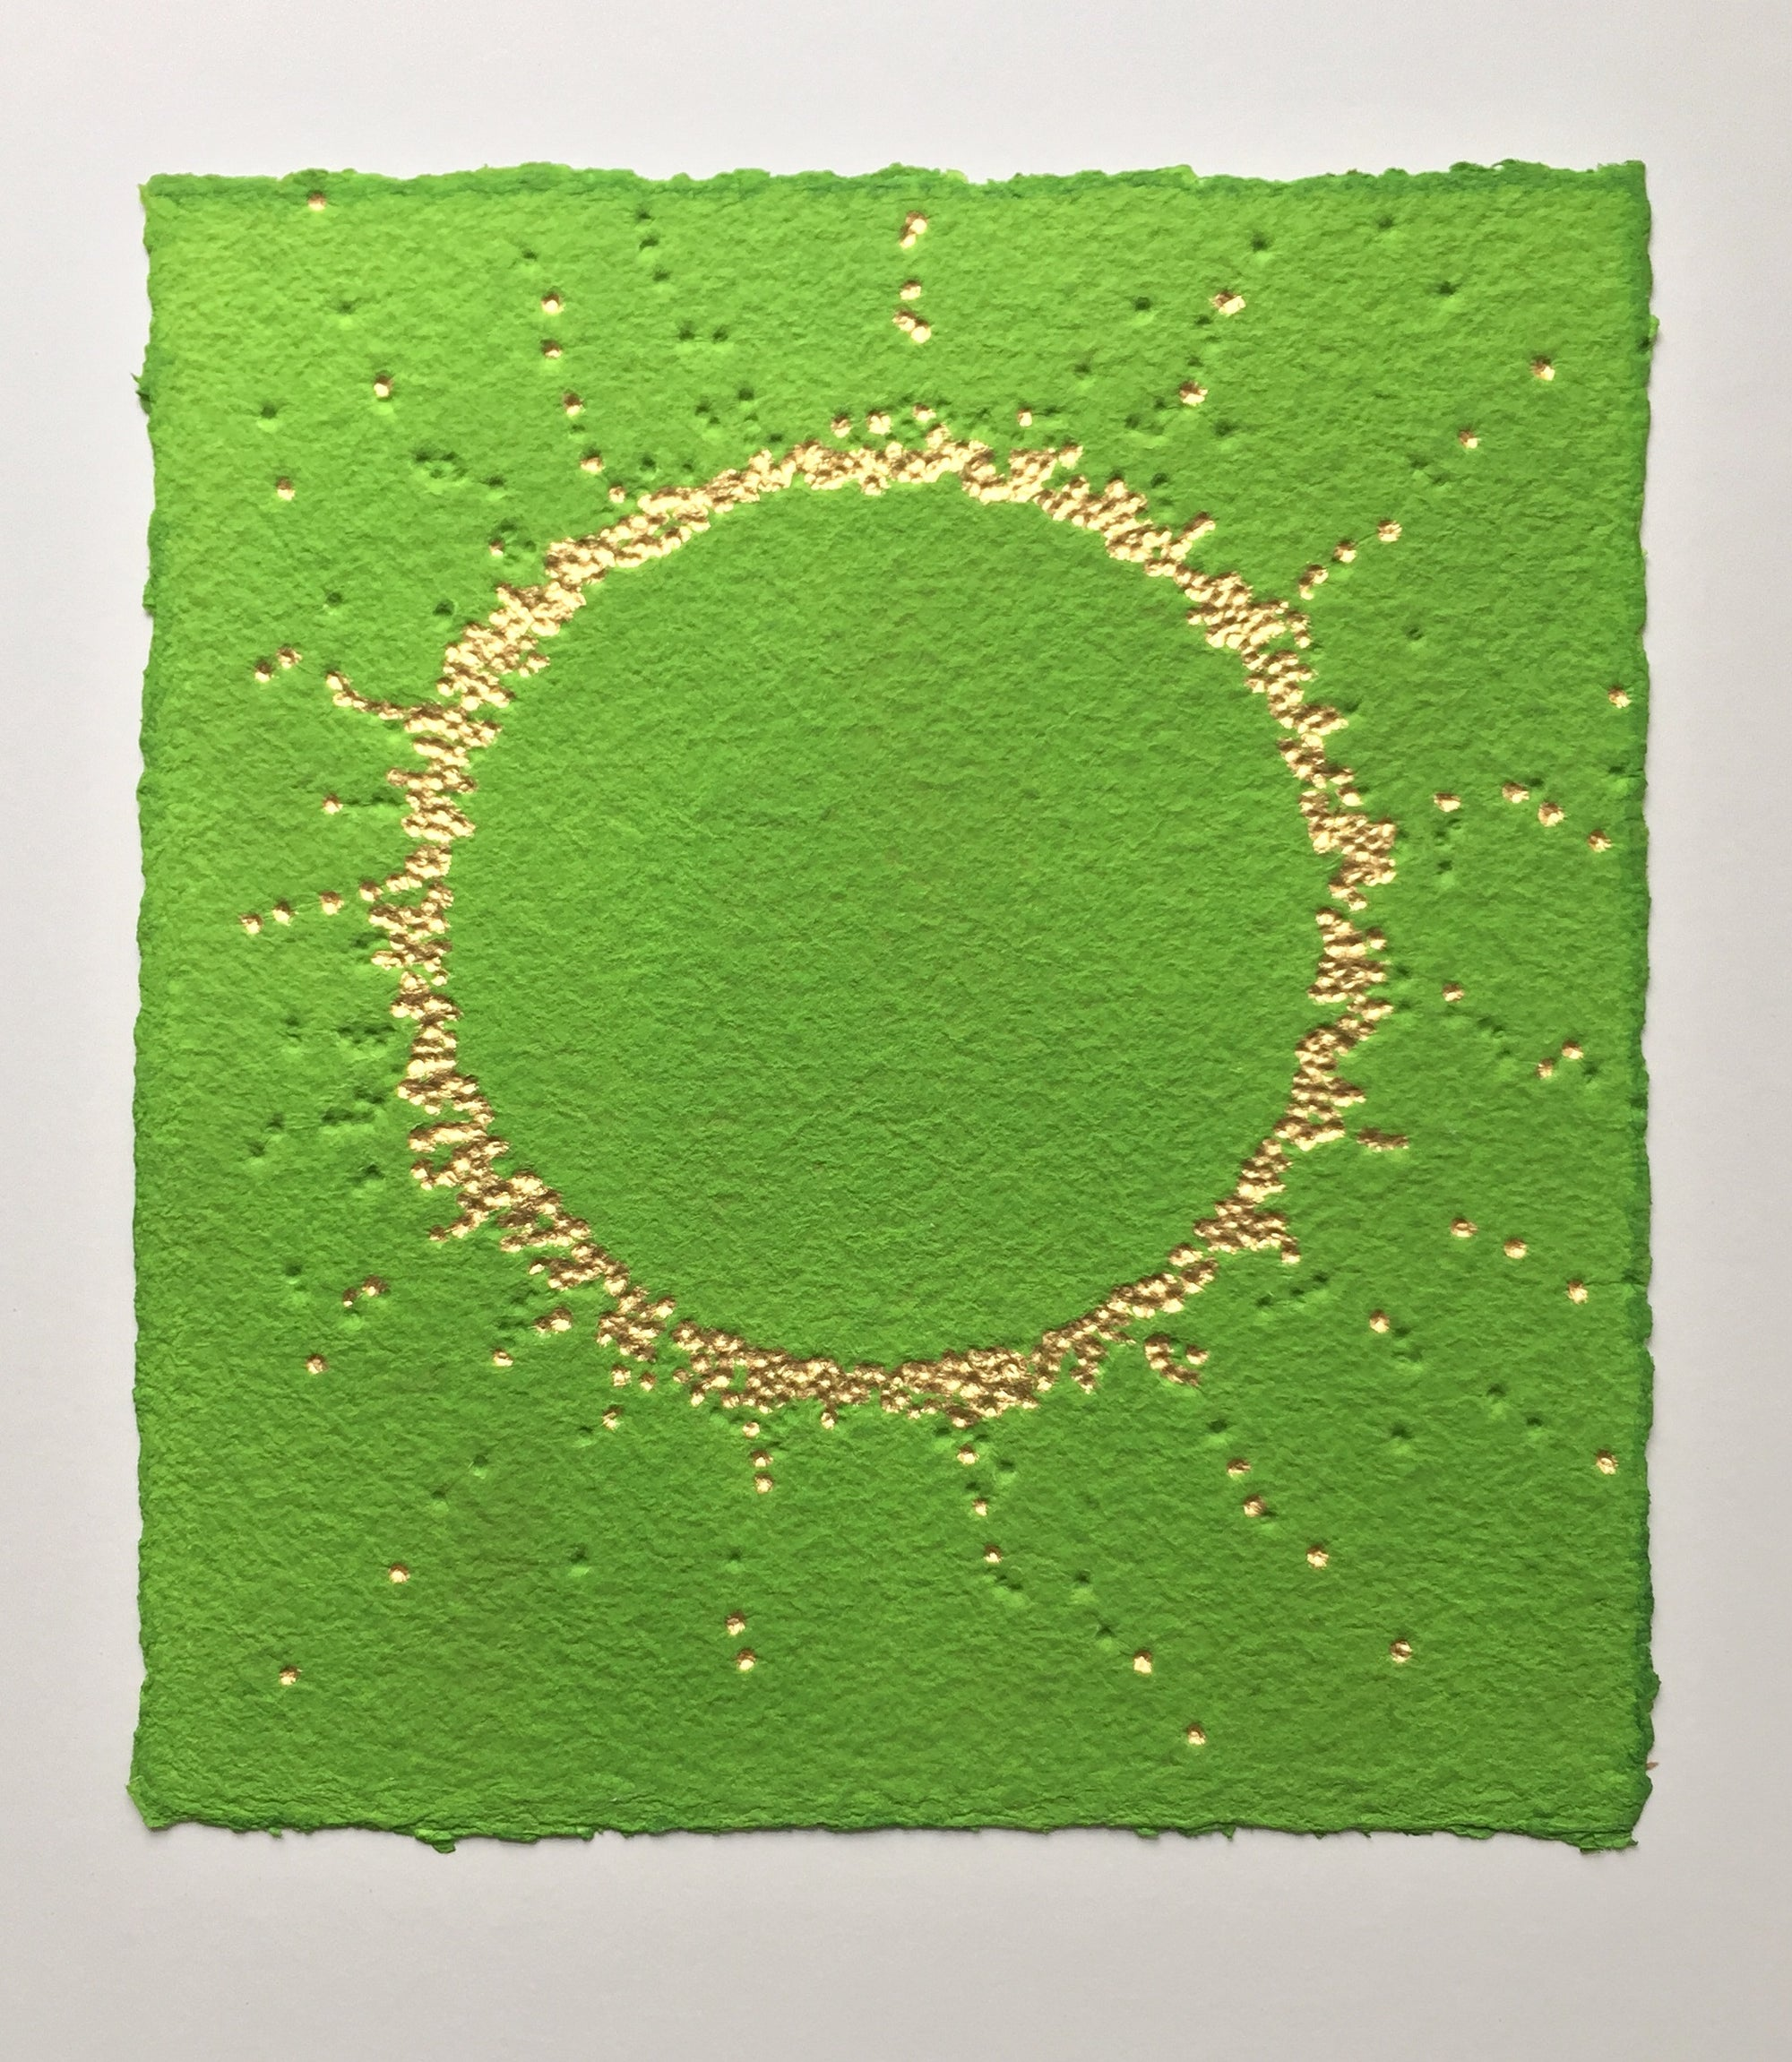 Suddenly it's spring , artwork by Gill Hickman, a deeply textured circle of gold leaf beams out from a vivid green background announcing, like a fanfare that spring has arrived.